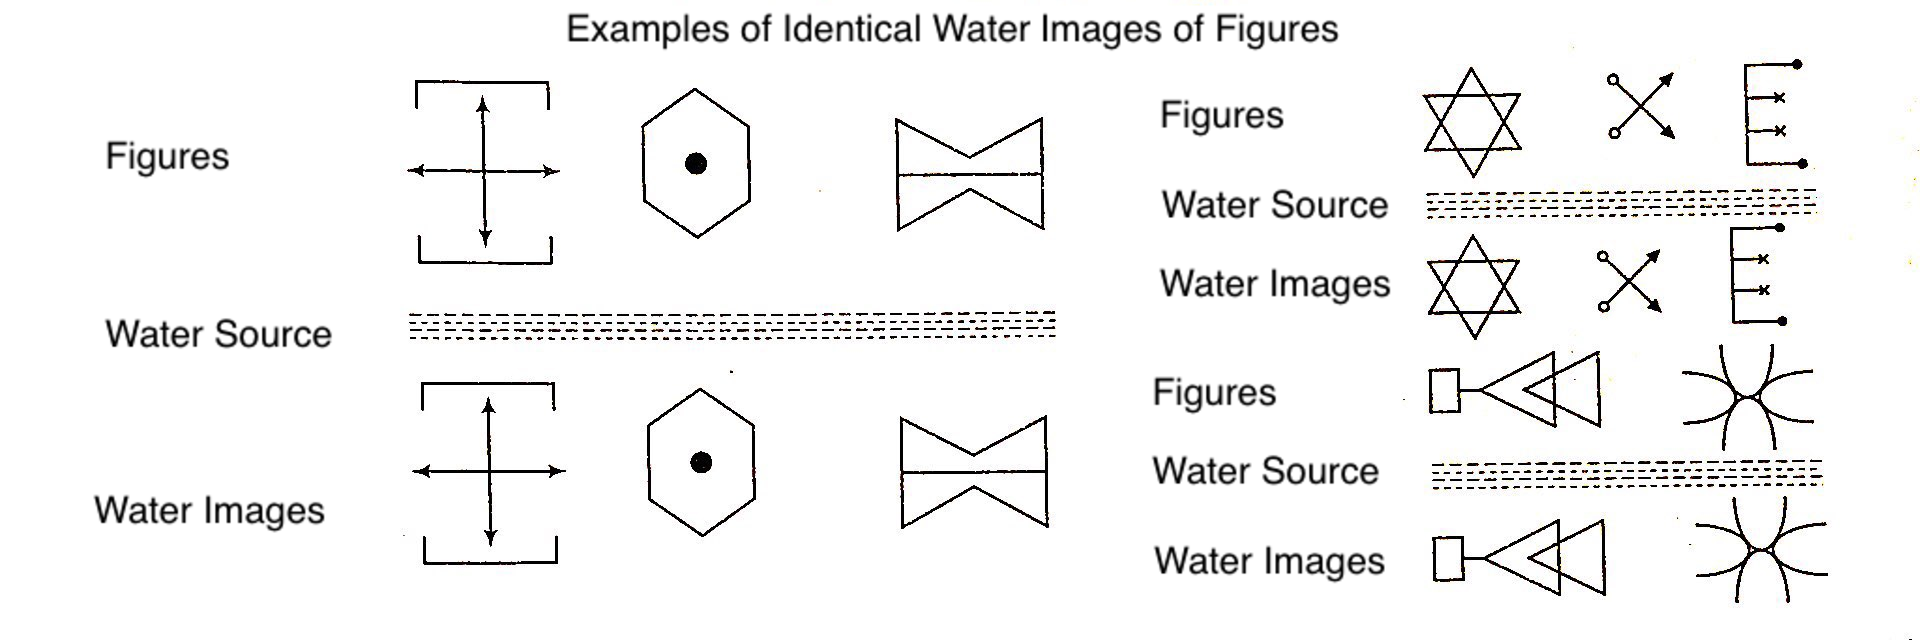 Water Images